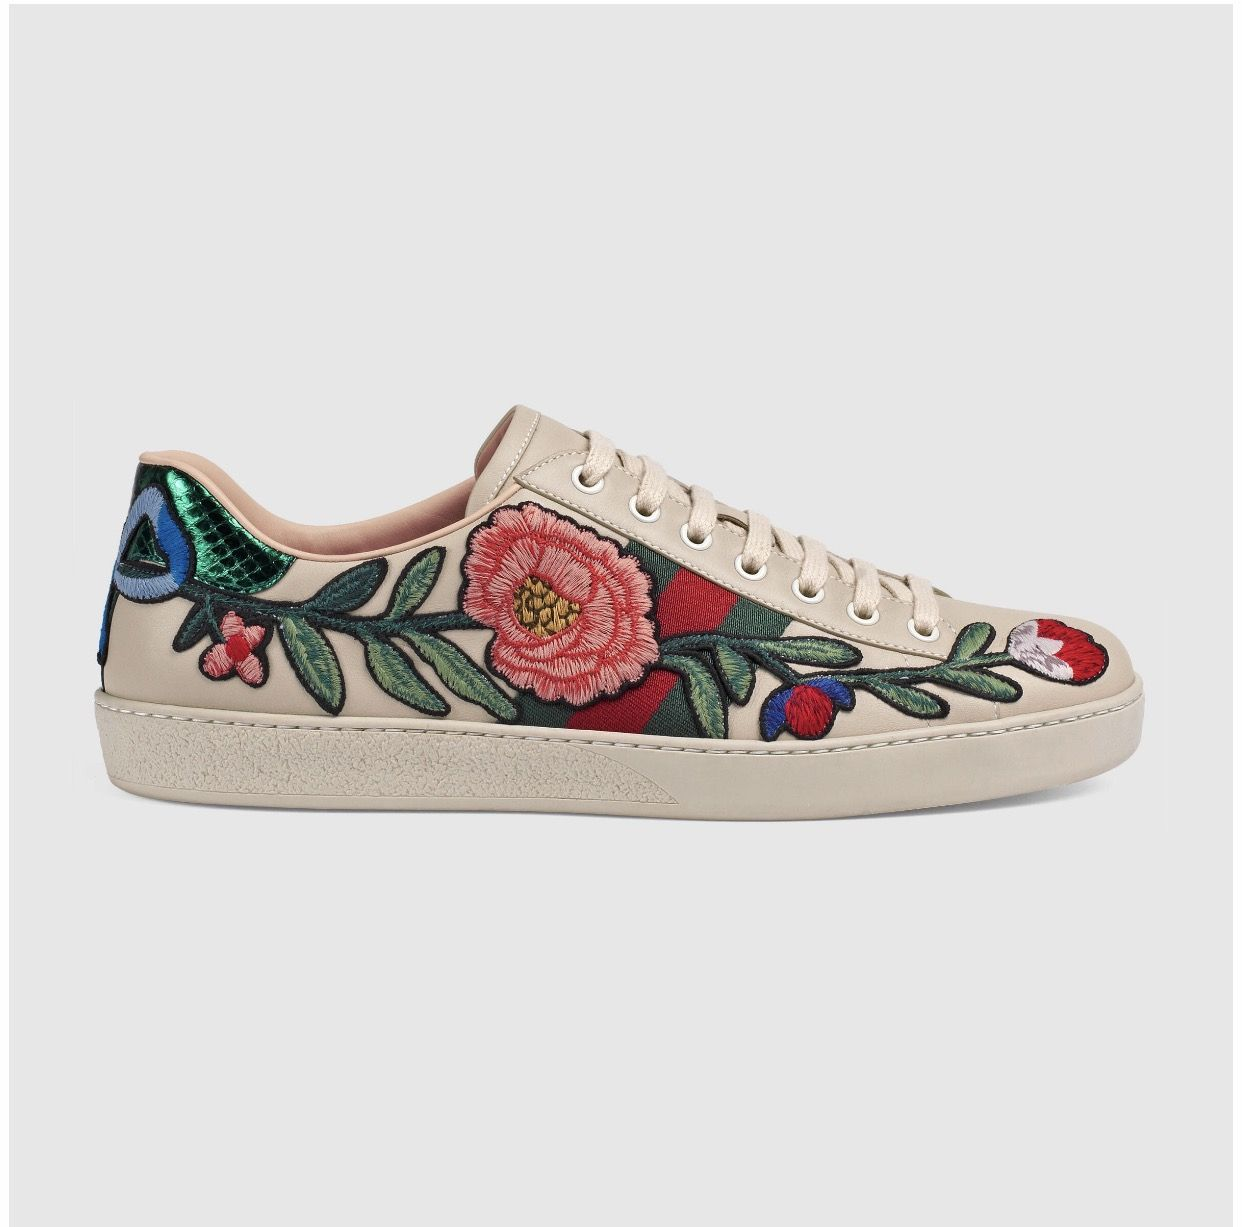 With box New arrivals 2017 fashion Luxury brand mens and womens low-top silhouette with an embroidered panther applique leather Casual shoes low shipping sale online clearance finishline IFfho4e